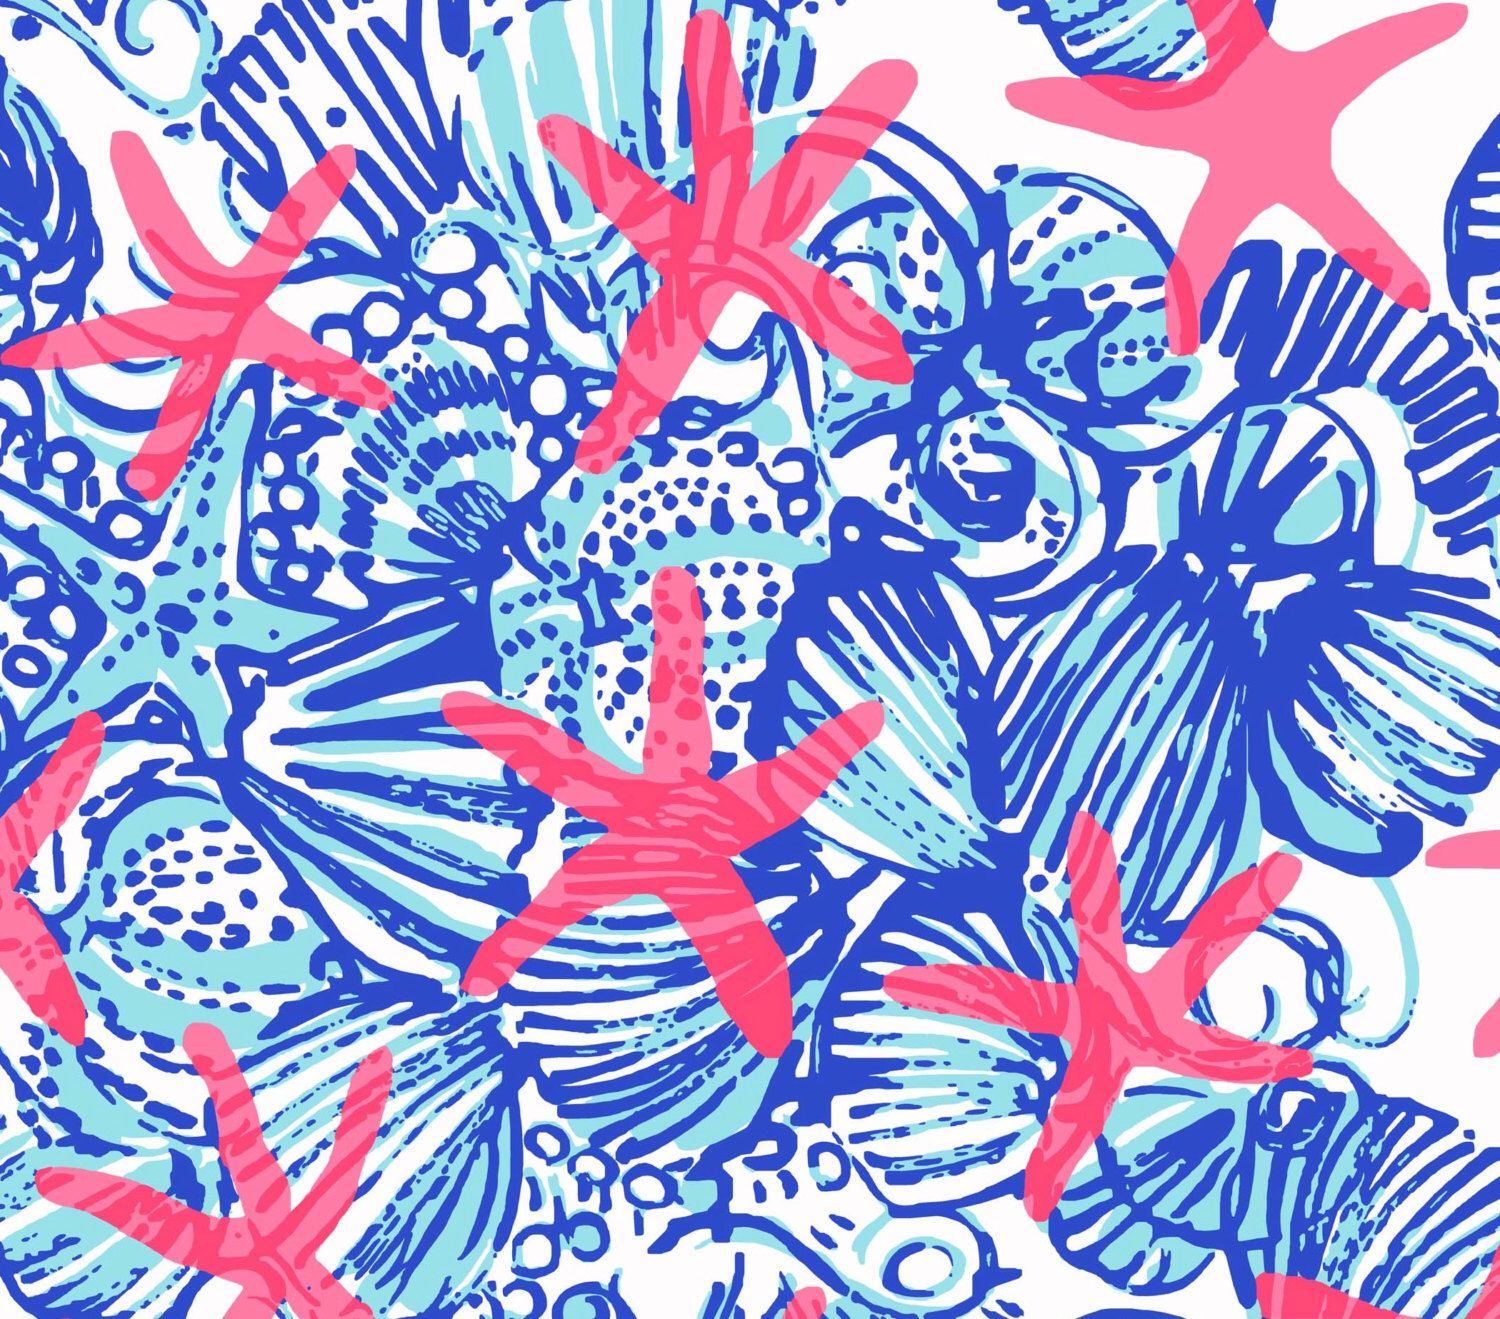 Lilly Pulitzer Fabric 18 X 18 Or 1 Yard Lilly Pulitzer Fabric She She Shells Large